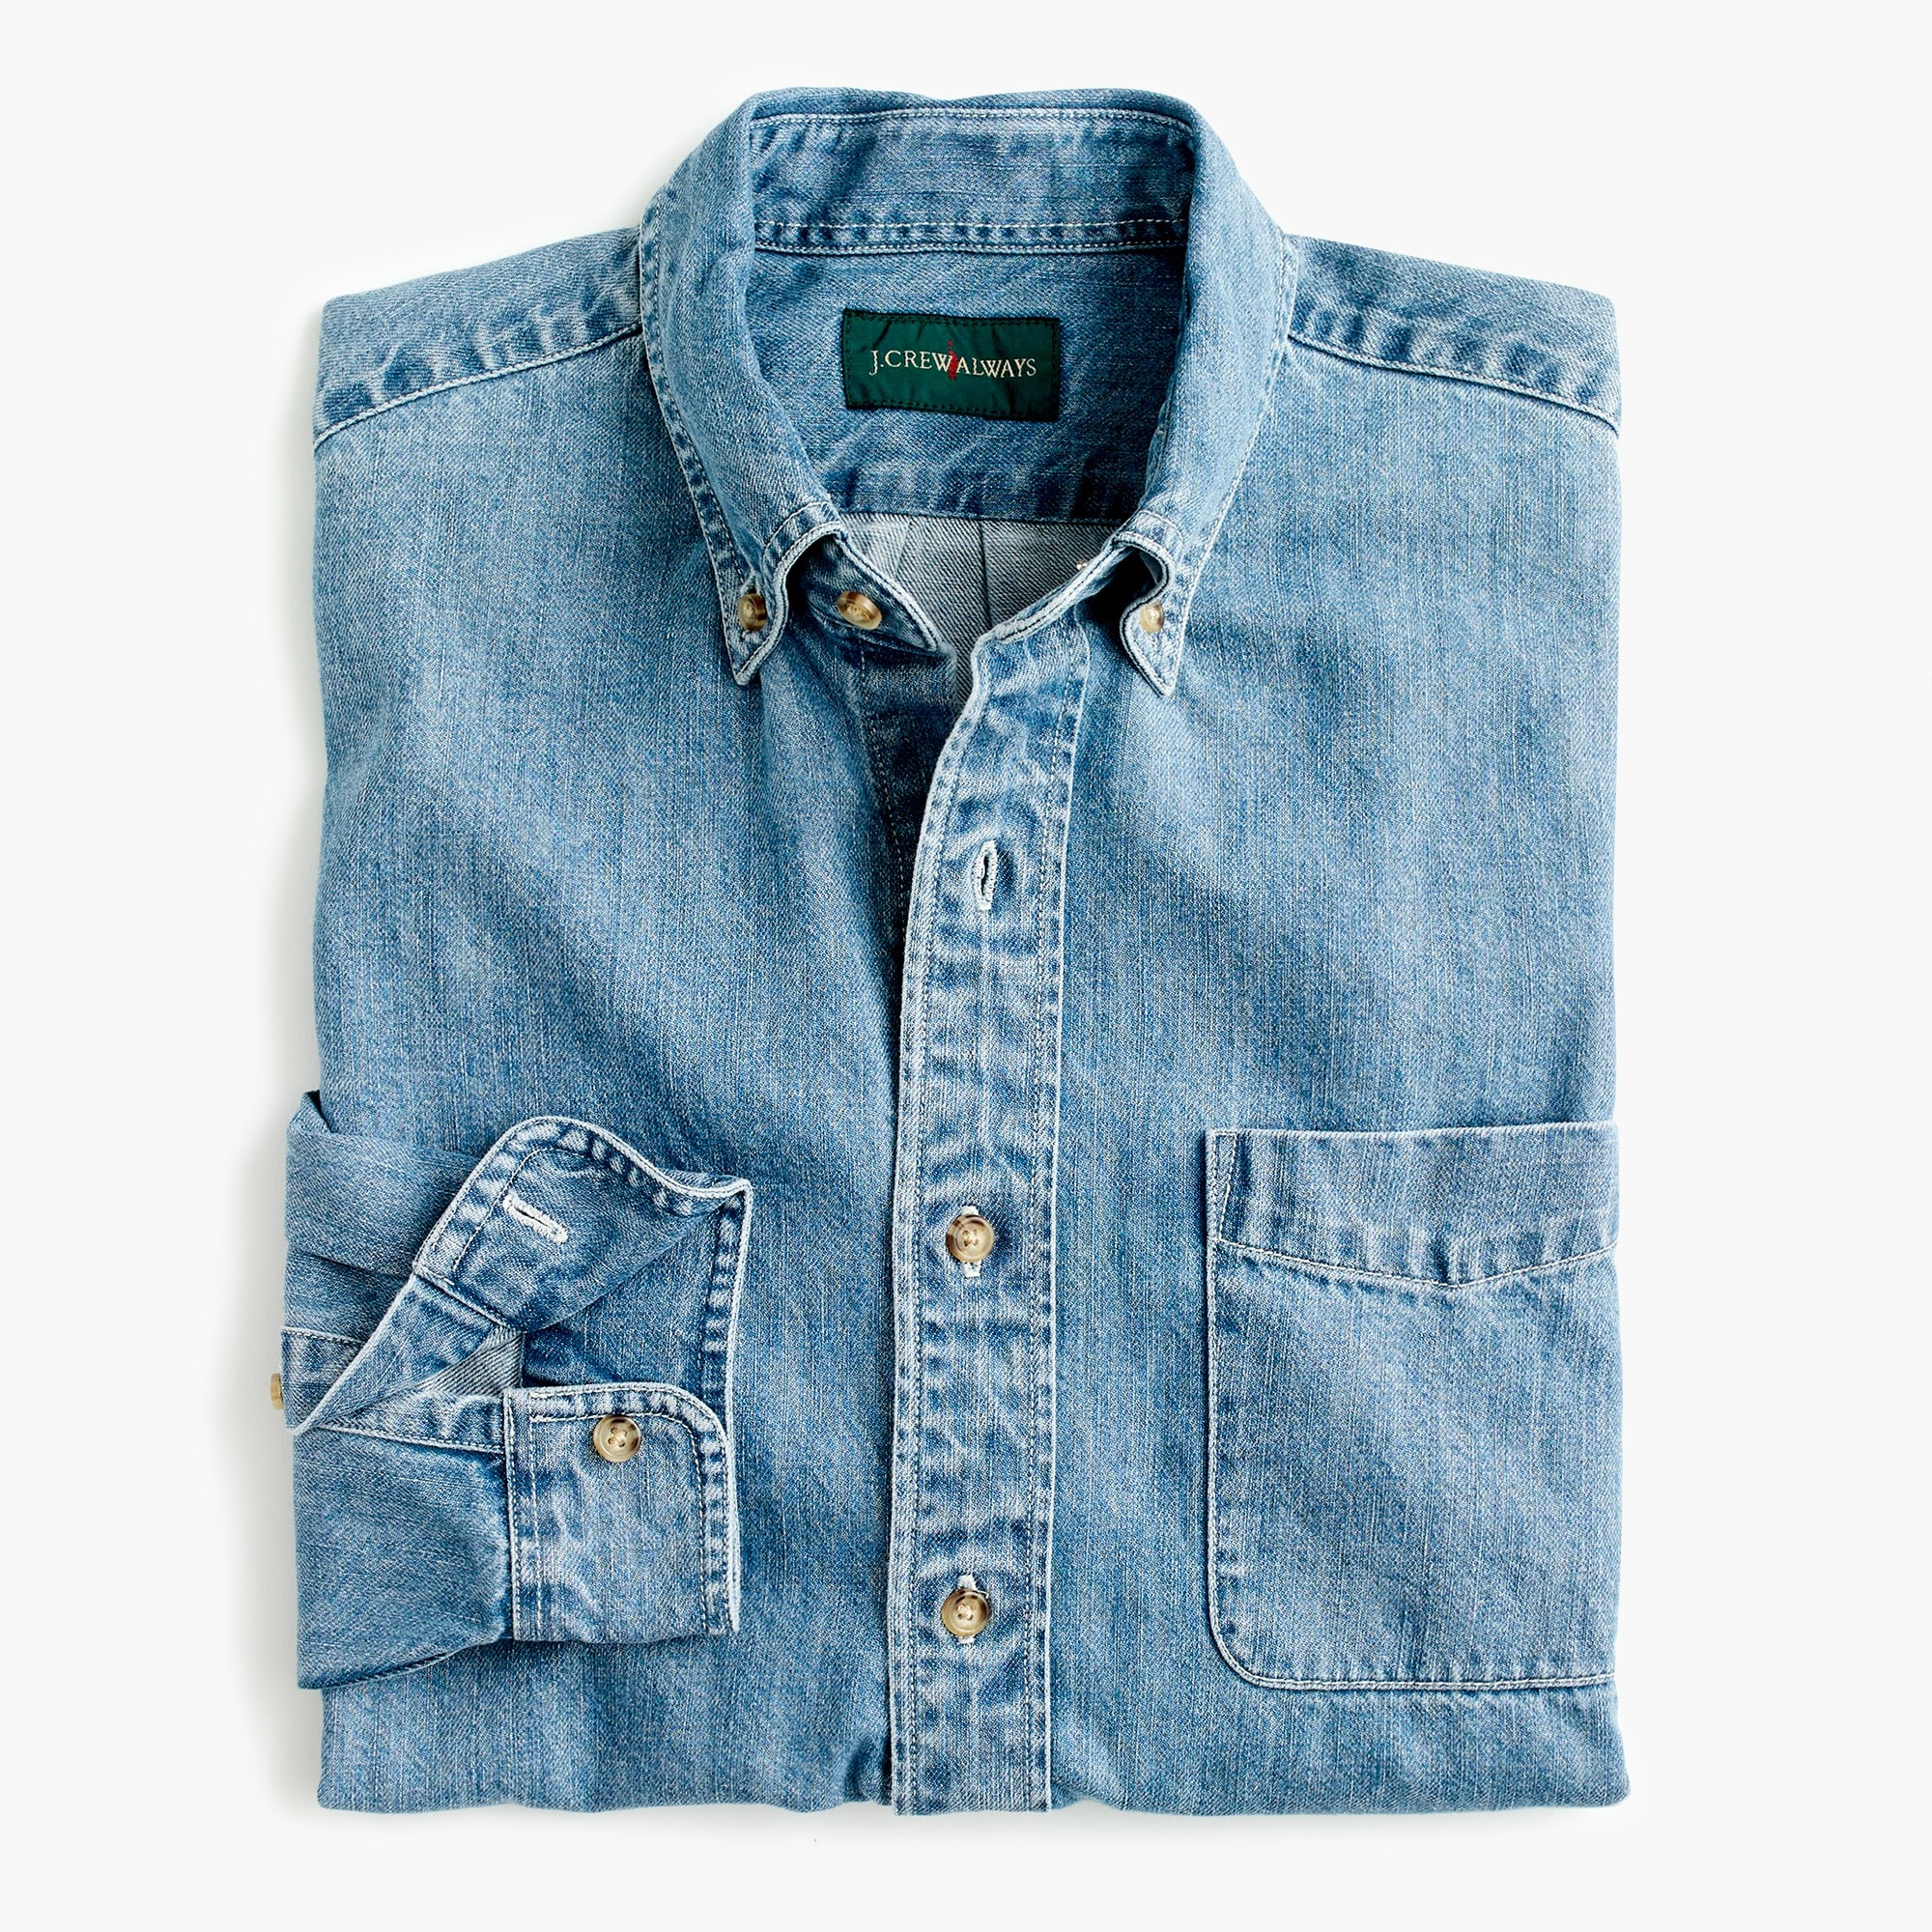 mens J.Crew Always midweight denim shirt